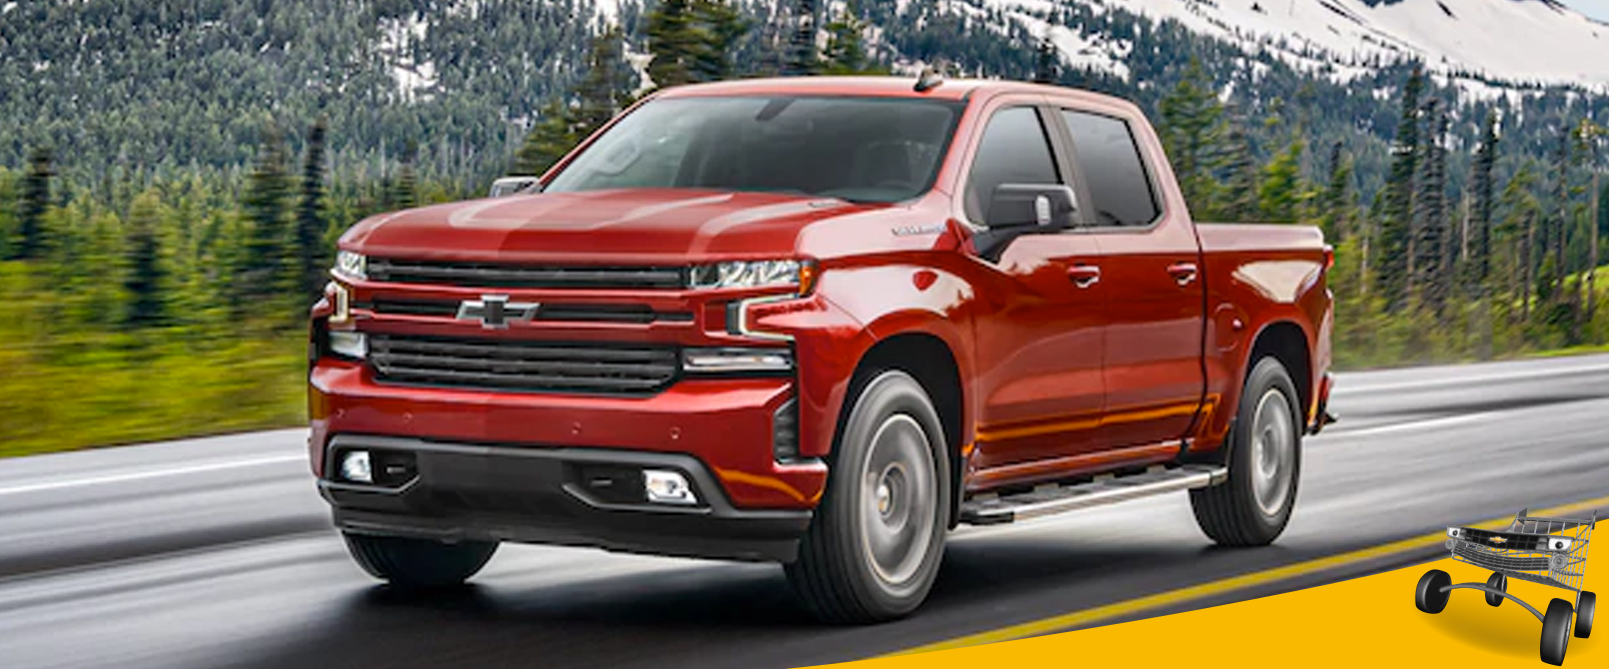 Selected, Inspected, and Vetted at Chevy of Homewood